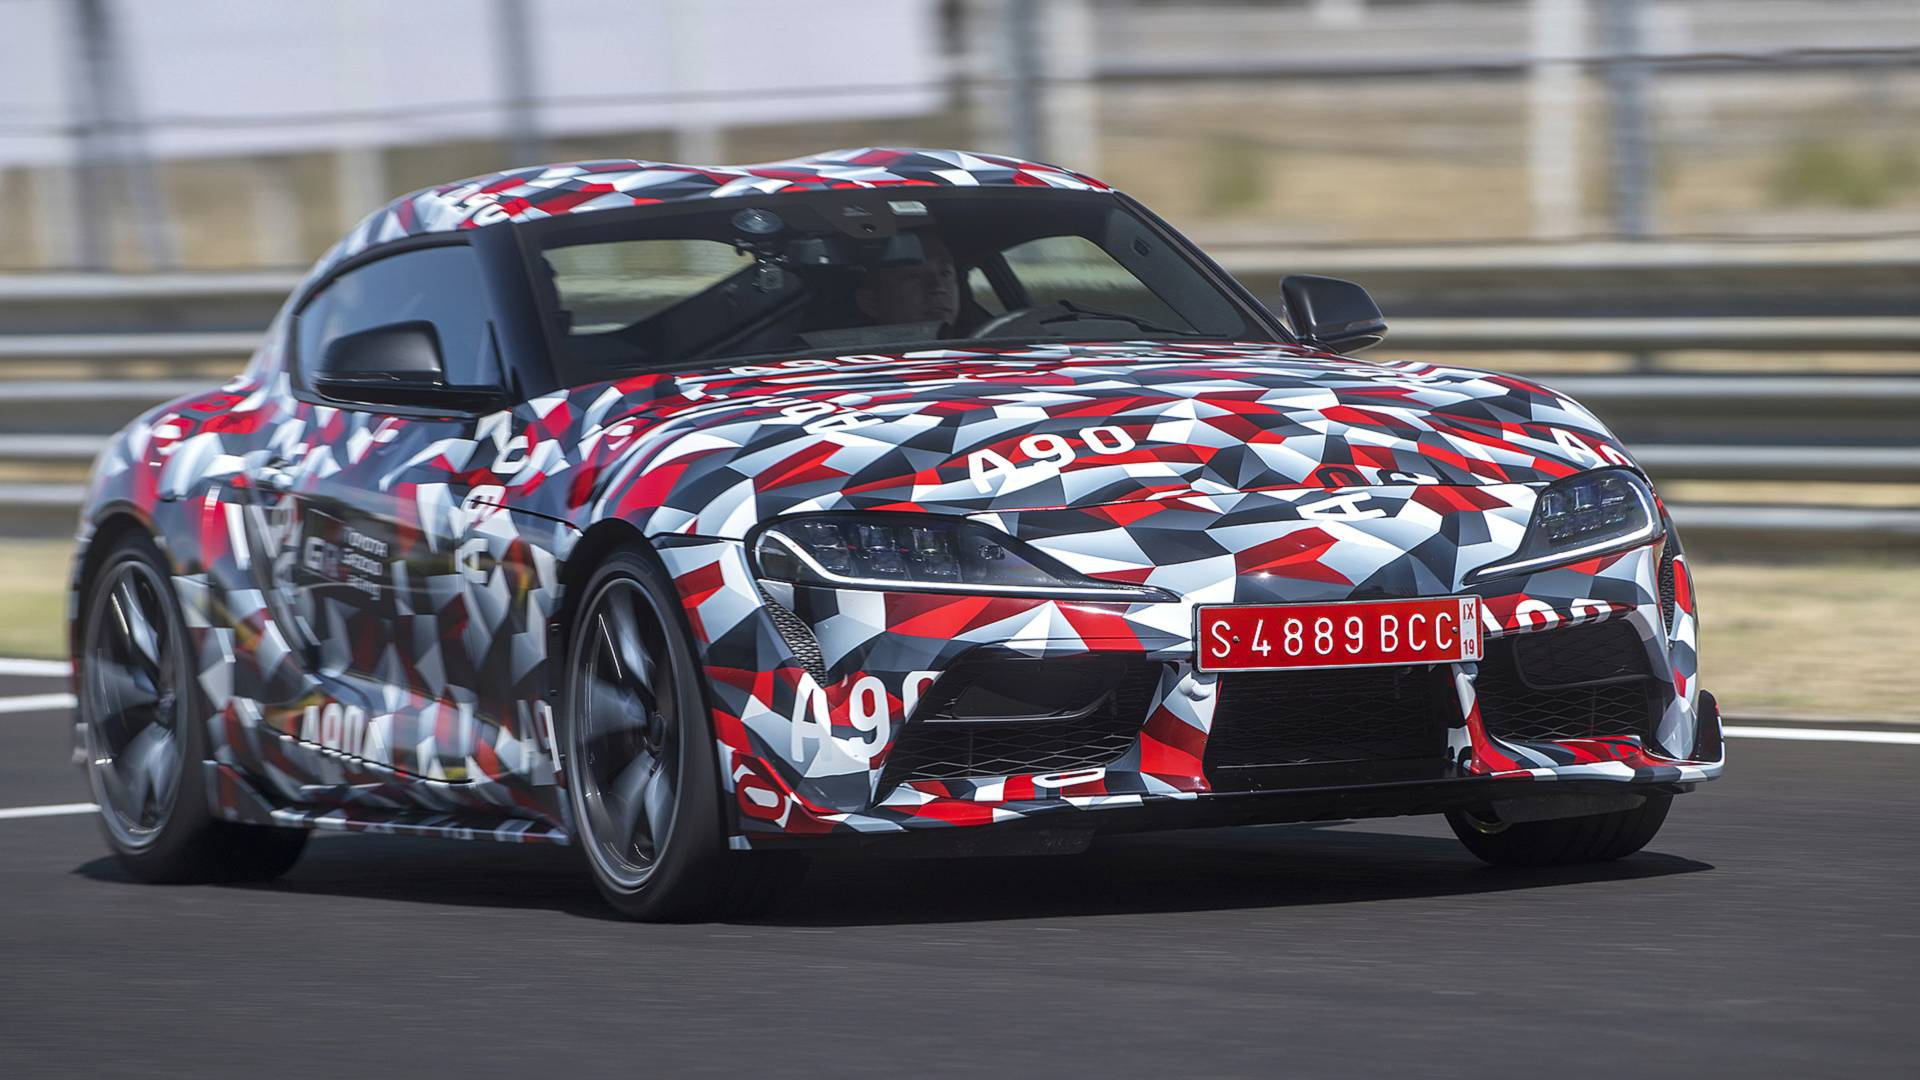 The fifth-generation Supra will borrow additional hardware from the new Z4 roadster.